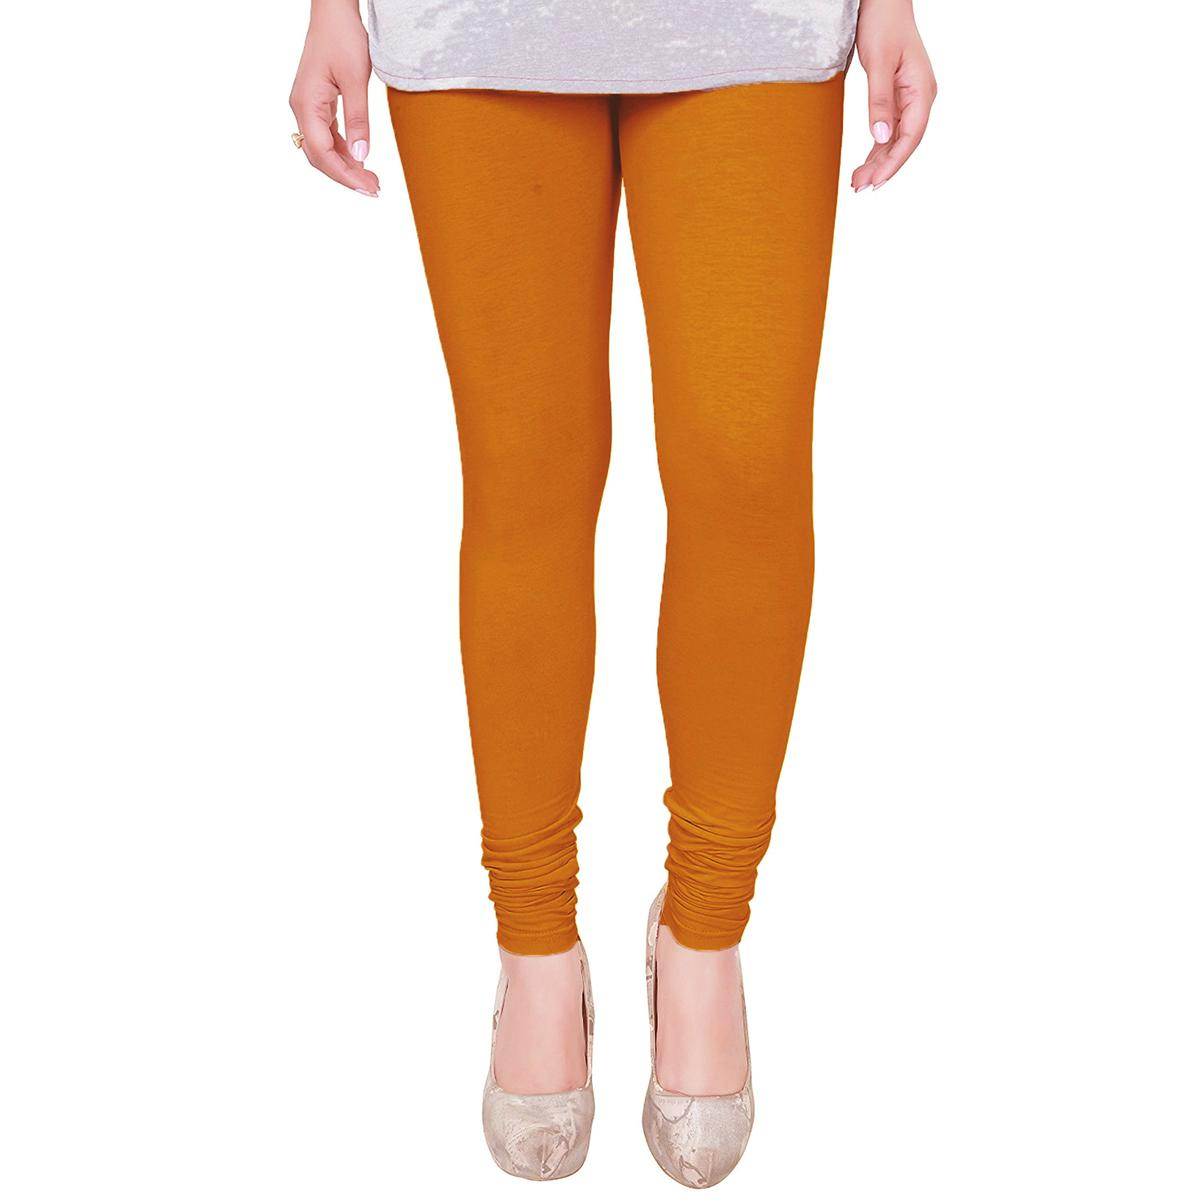 Fantastic Orangutan Orange Colored Casual Wear Churidar Leggings